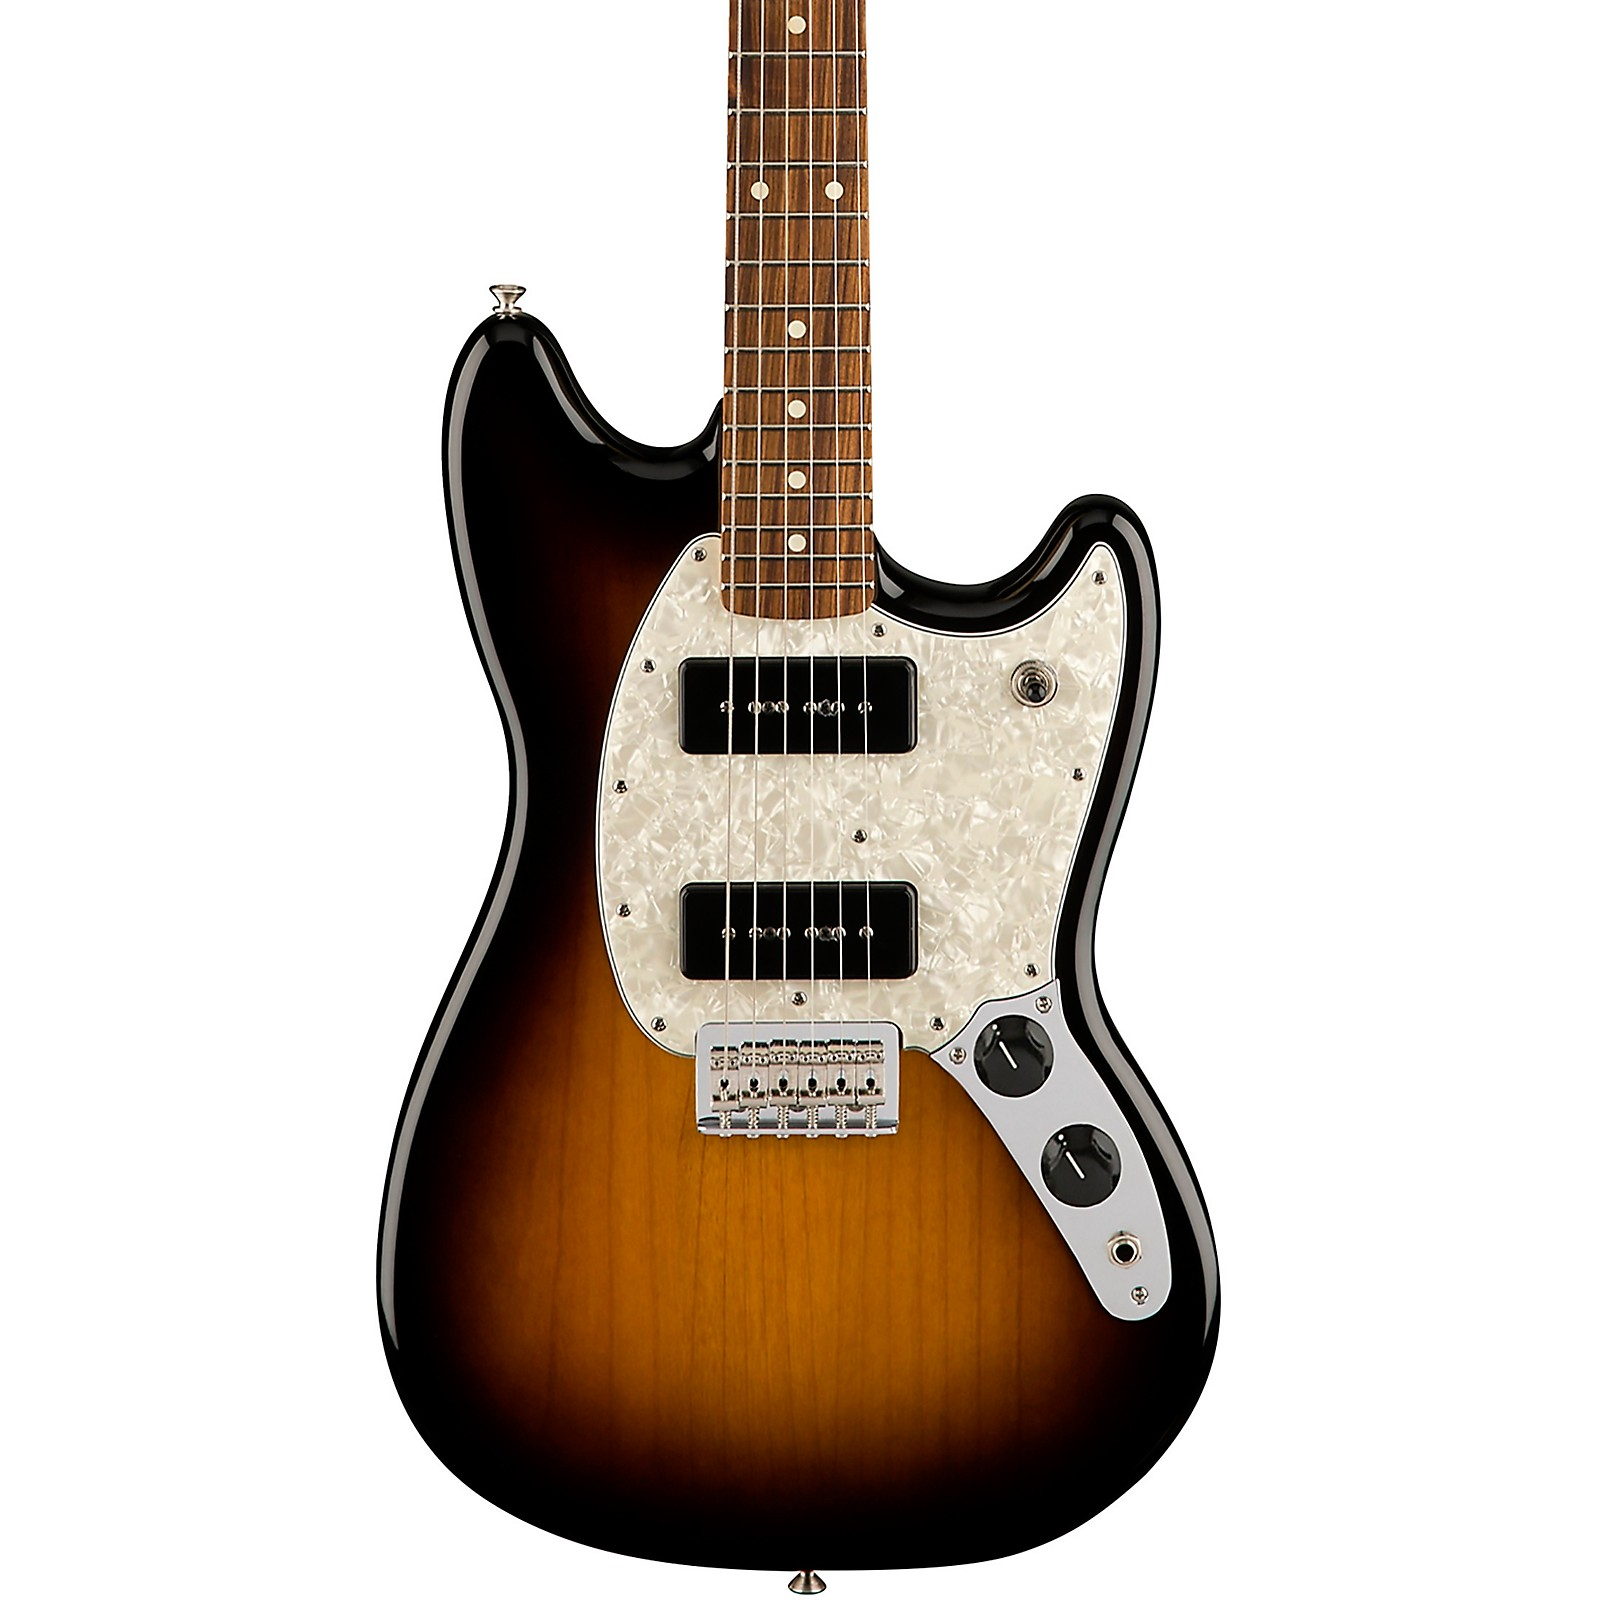 Fender Limited Edition Mustang 90 Electric Guitar with Pau Ferro Fingerboard 2-Color Burst